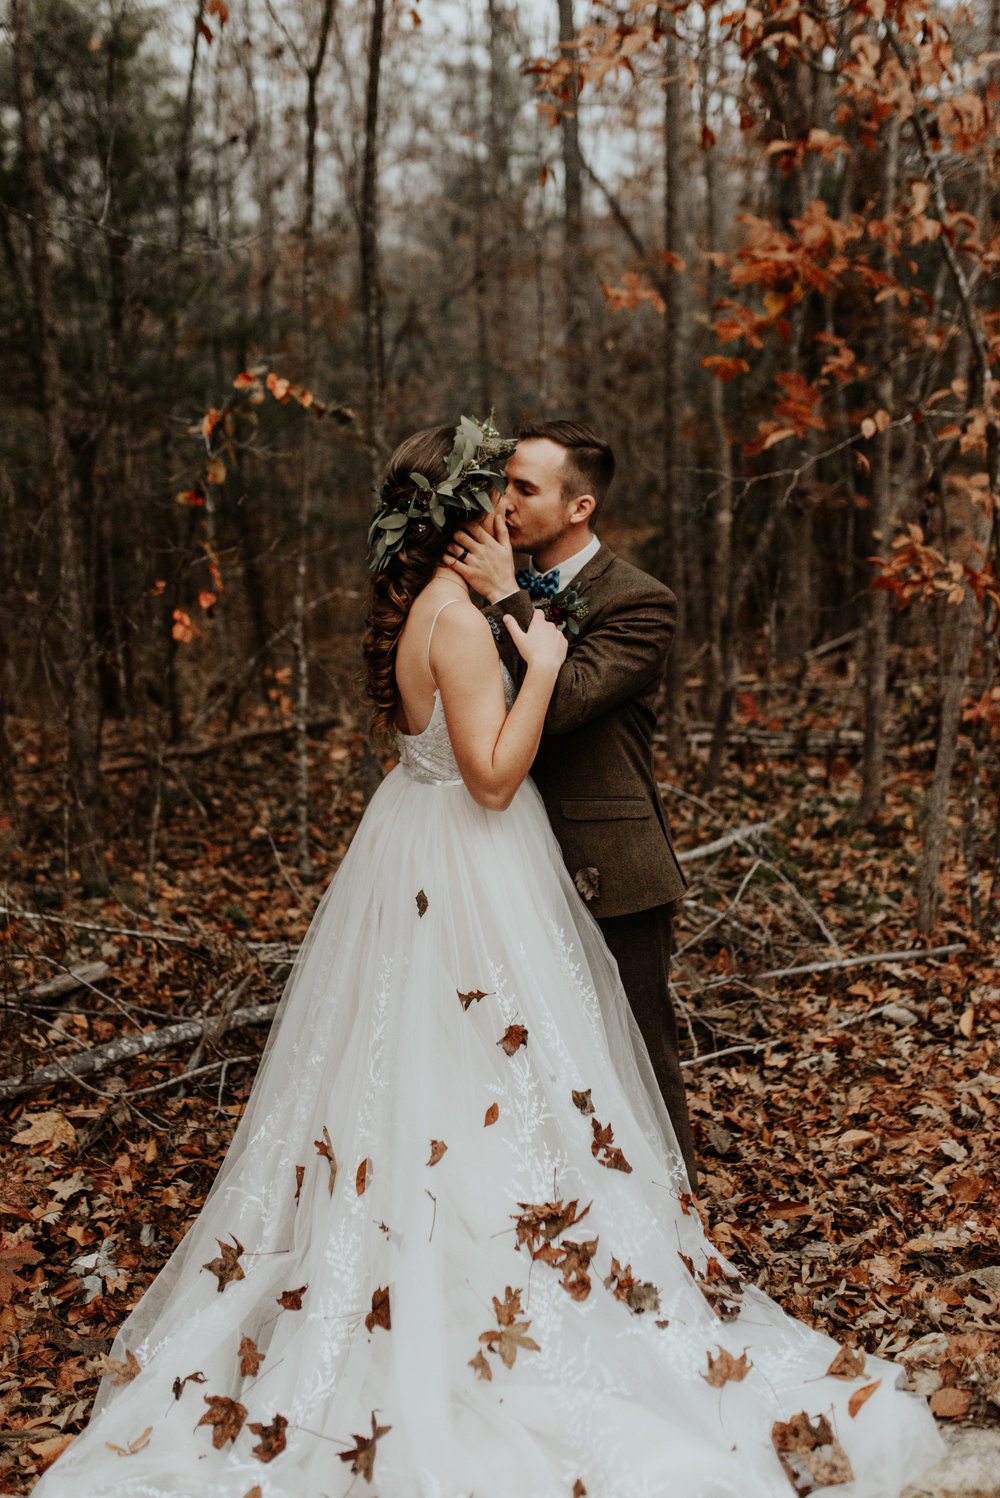 Leaves on dress fall wedding